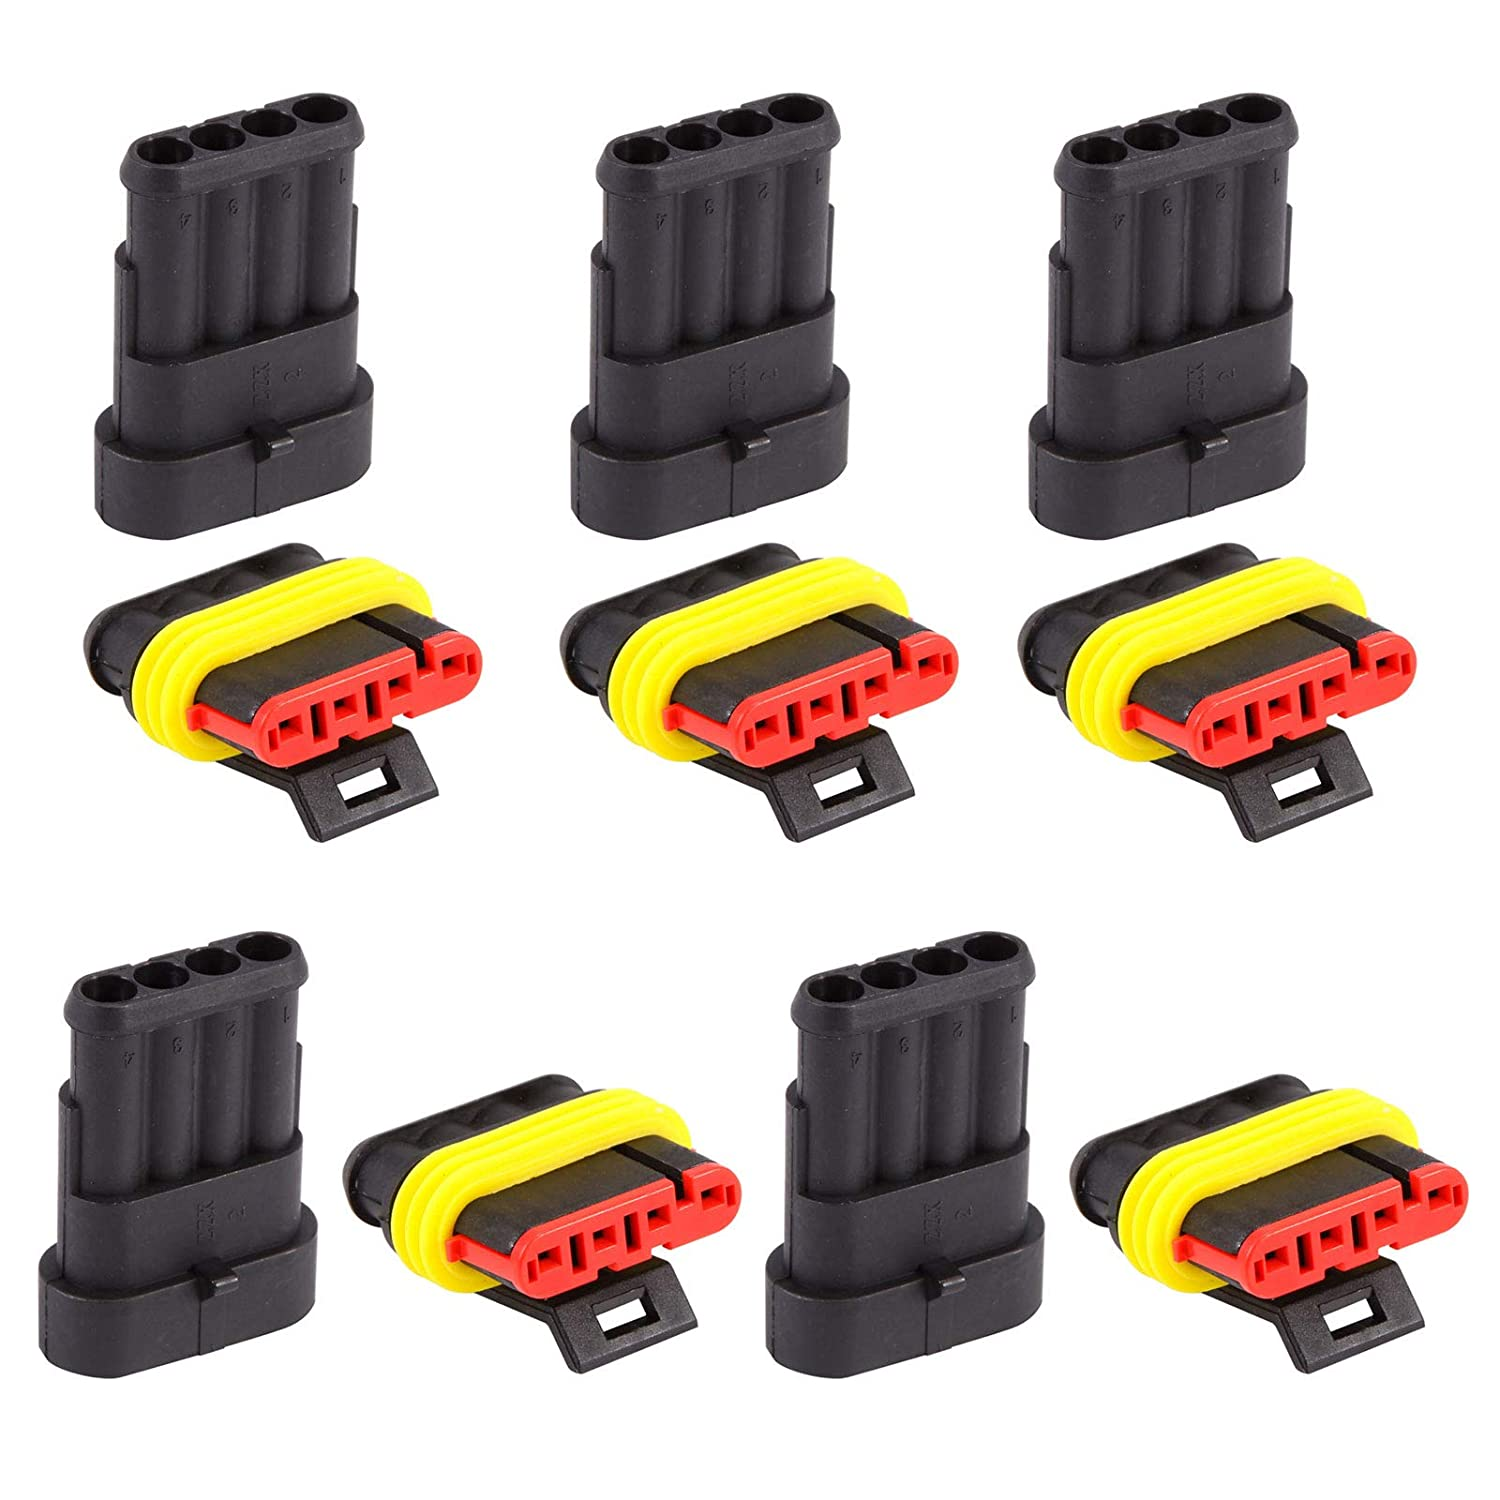 10 Sets 4 Pin Way Waterproof Electrical Wire Plastic Connector Plug Sealed for Motorcycle Scooter Auto Truck Marine